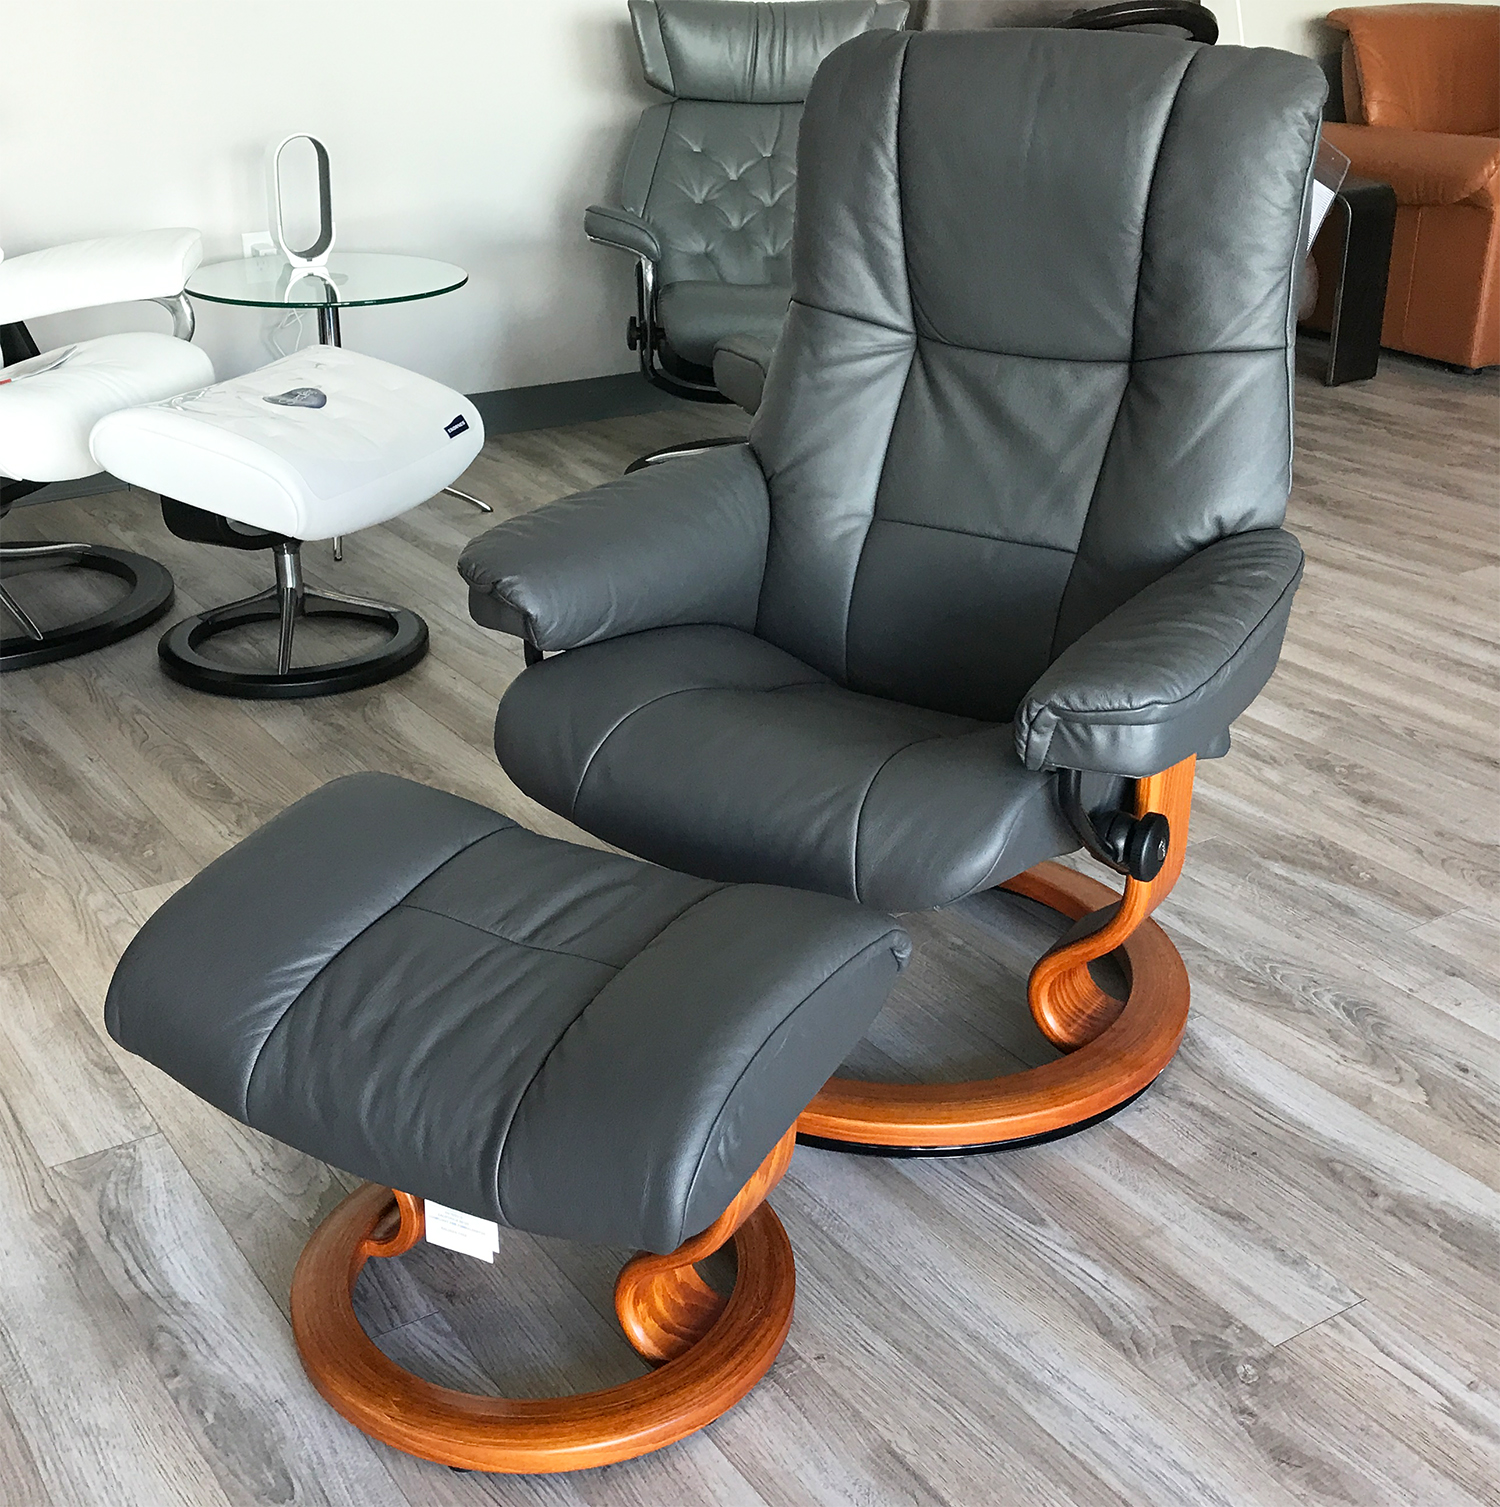 Leather Chairs With Ottoman Stressless Mayfair Paloma Rock Leather Recliner Chair And Ottoman By Ekornes